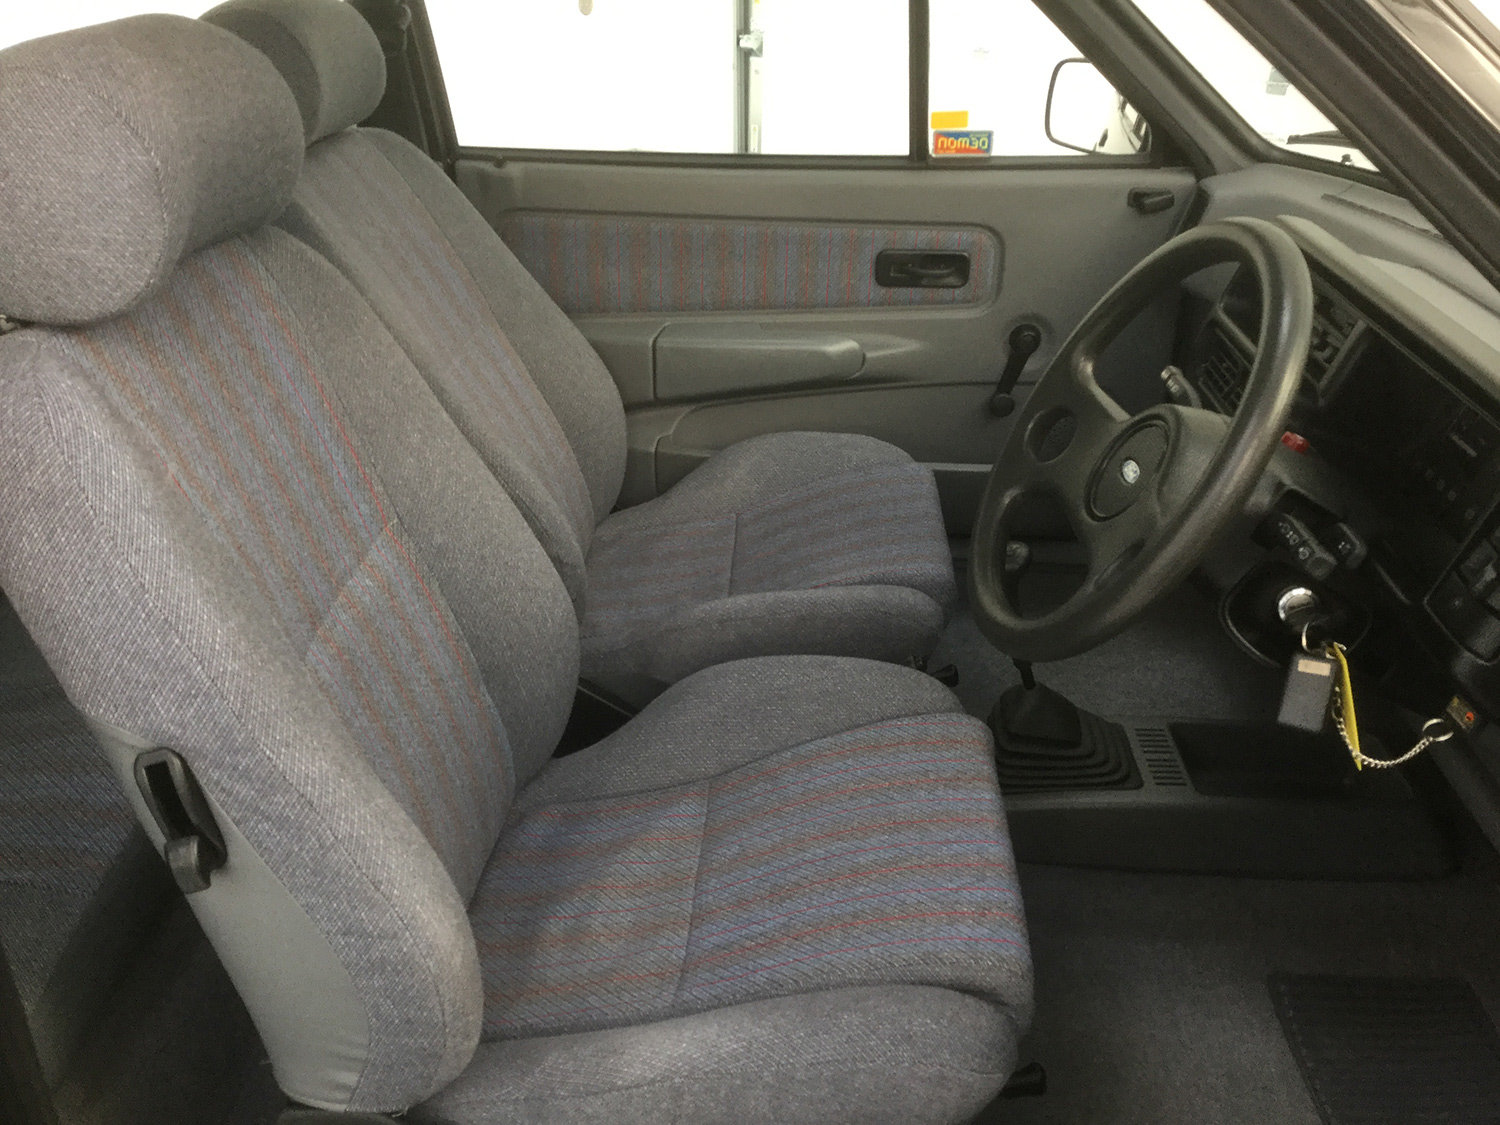 1984 Stunning Ford Orion 1.6GL Only 1 Owner For Sale (picture 10 of 10)